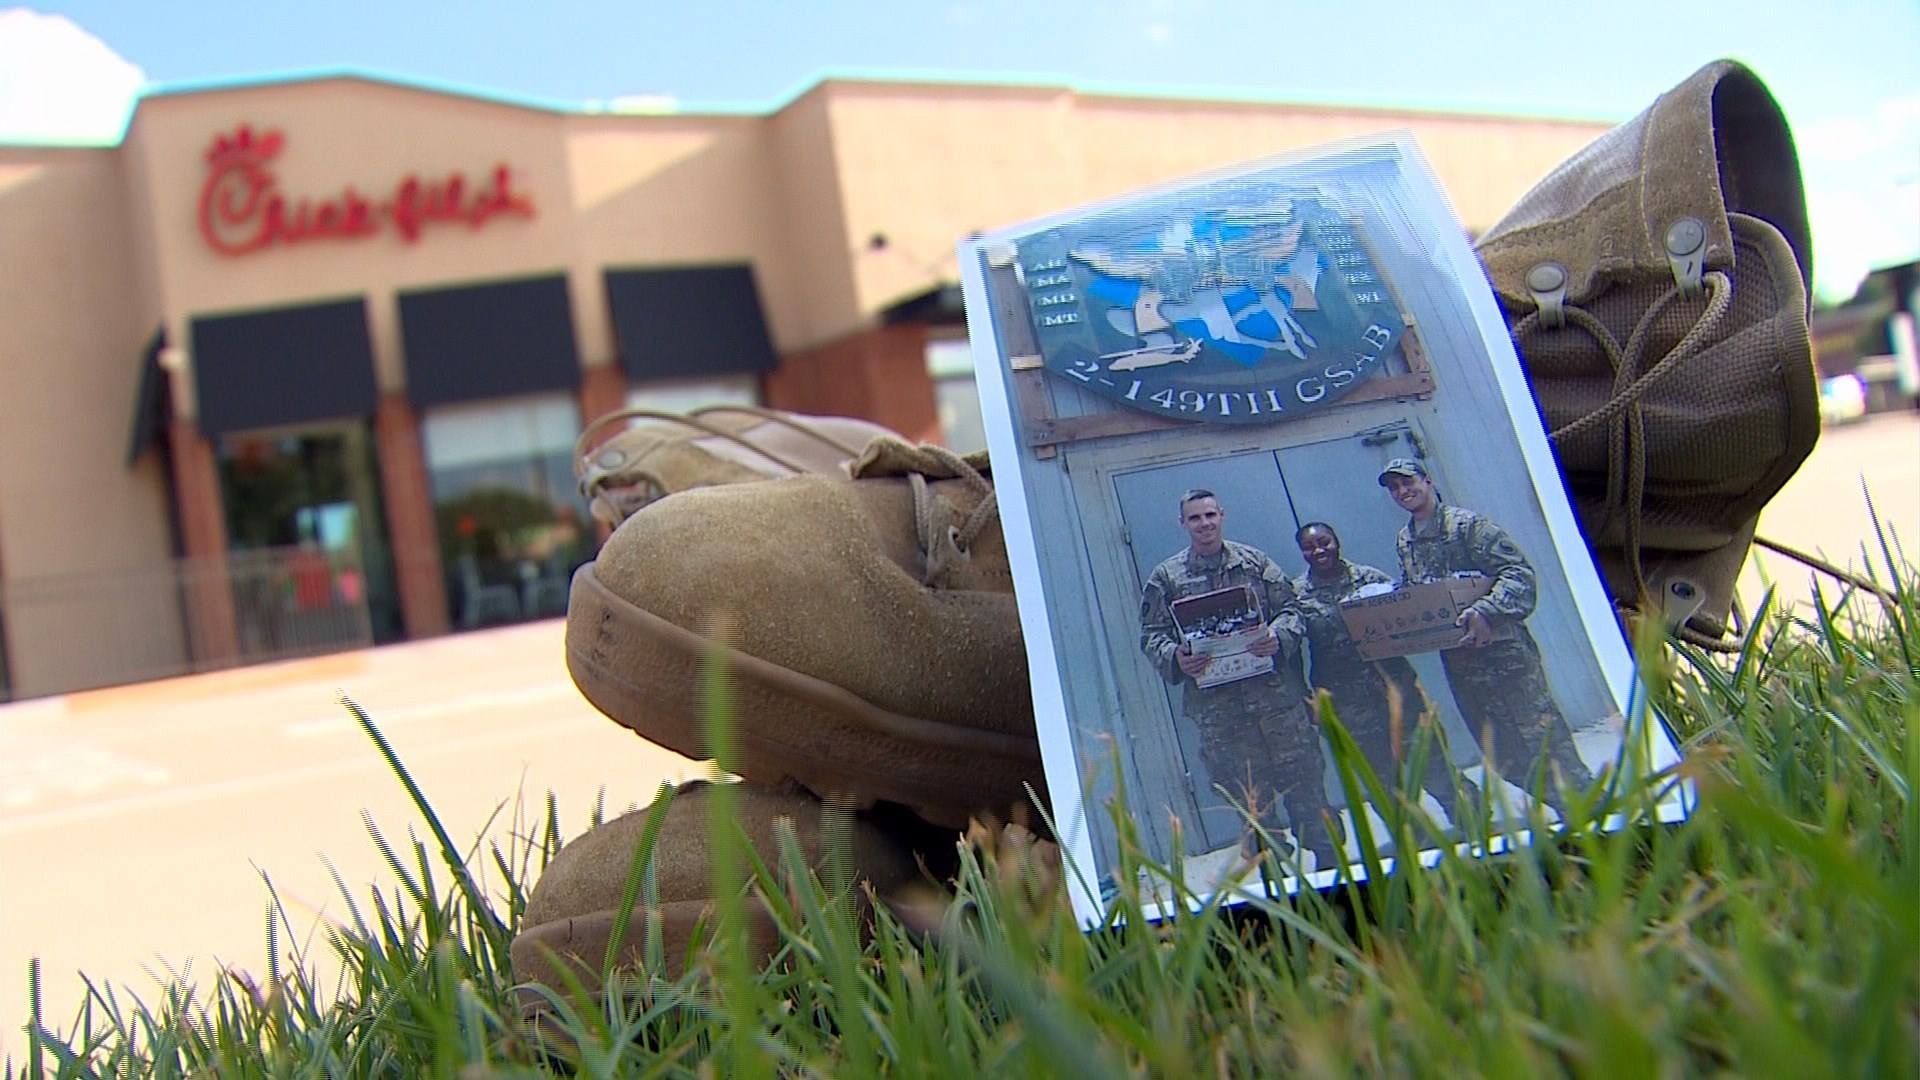 Flower Mound Chick fil A satisfies craving for local sol r serving in Iraq